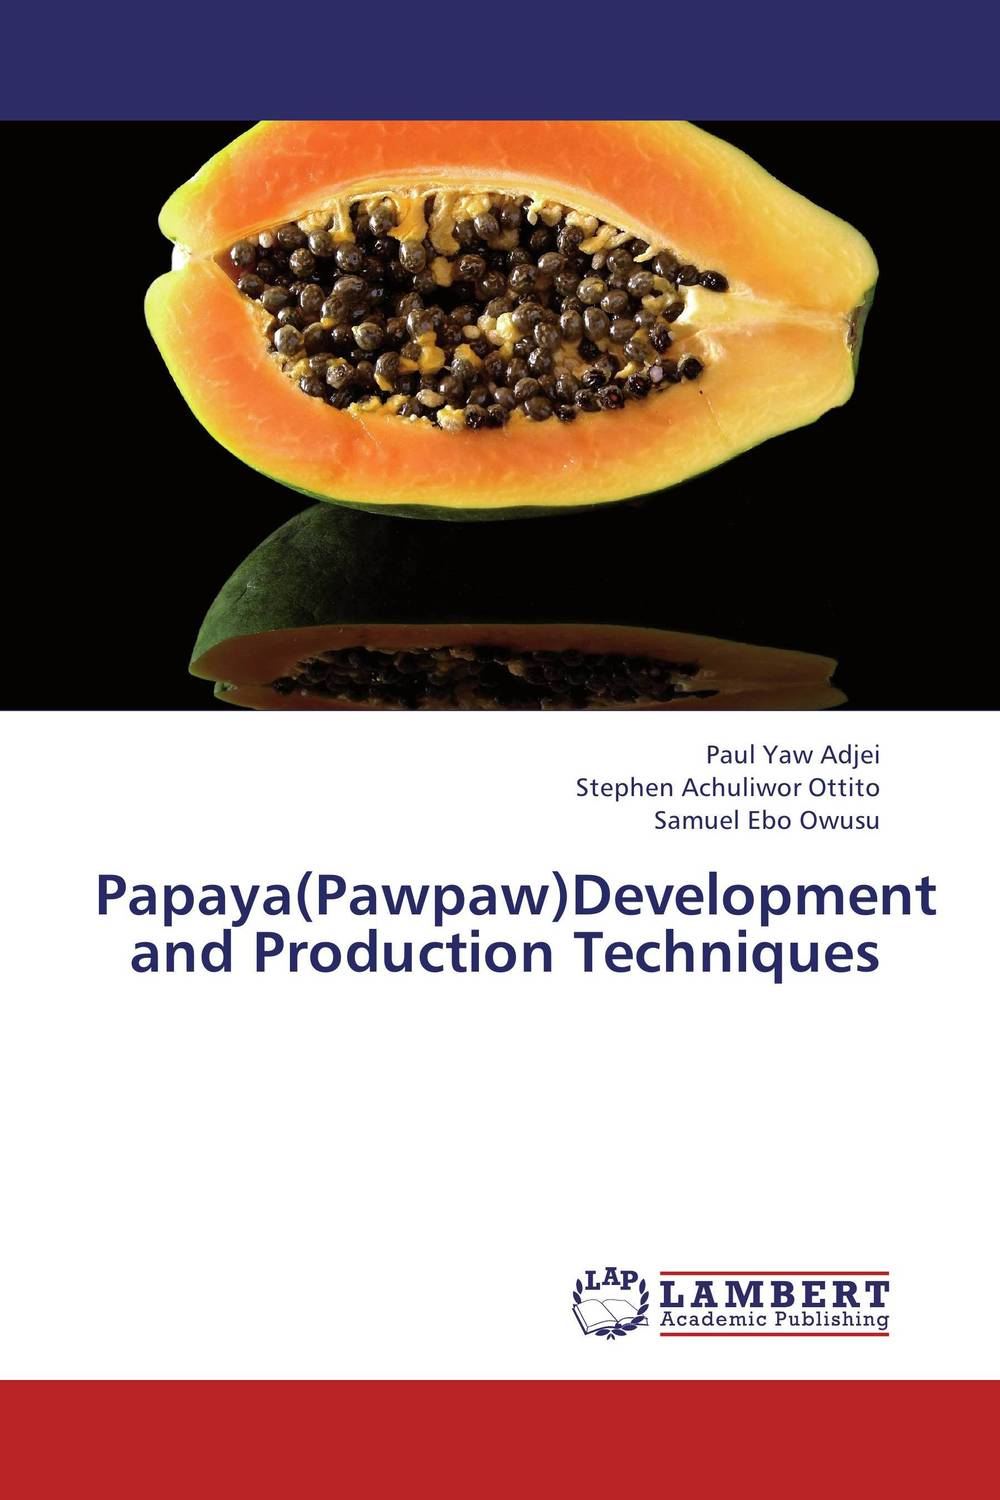 Papaya(Pawpaw)Development and Production Techniques development of a computational interface for small hydropower plant